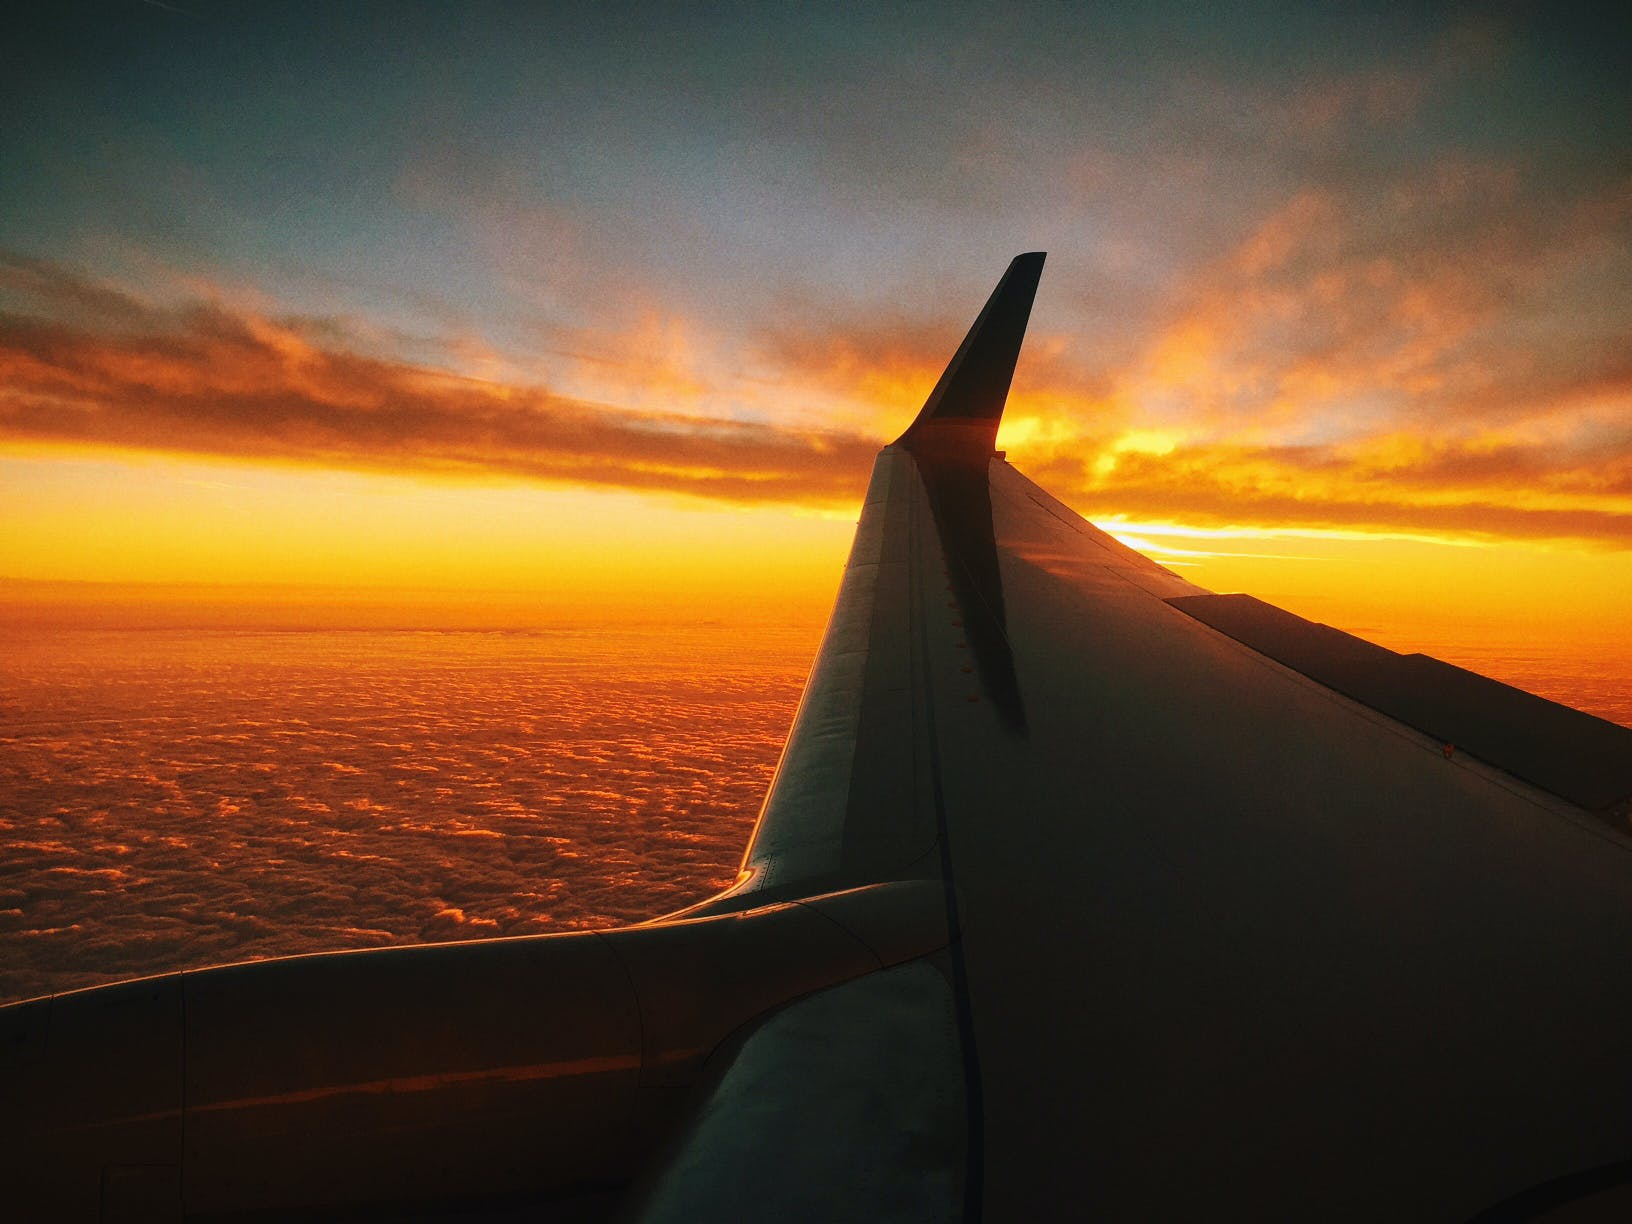 Window Plane Photography of Sunset